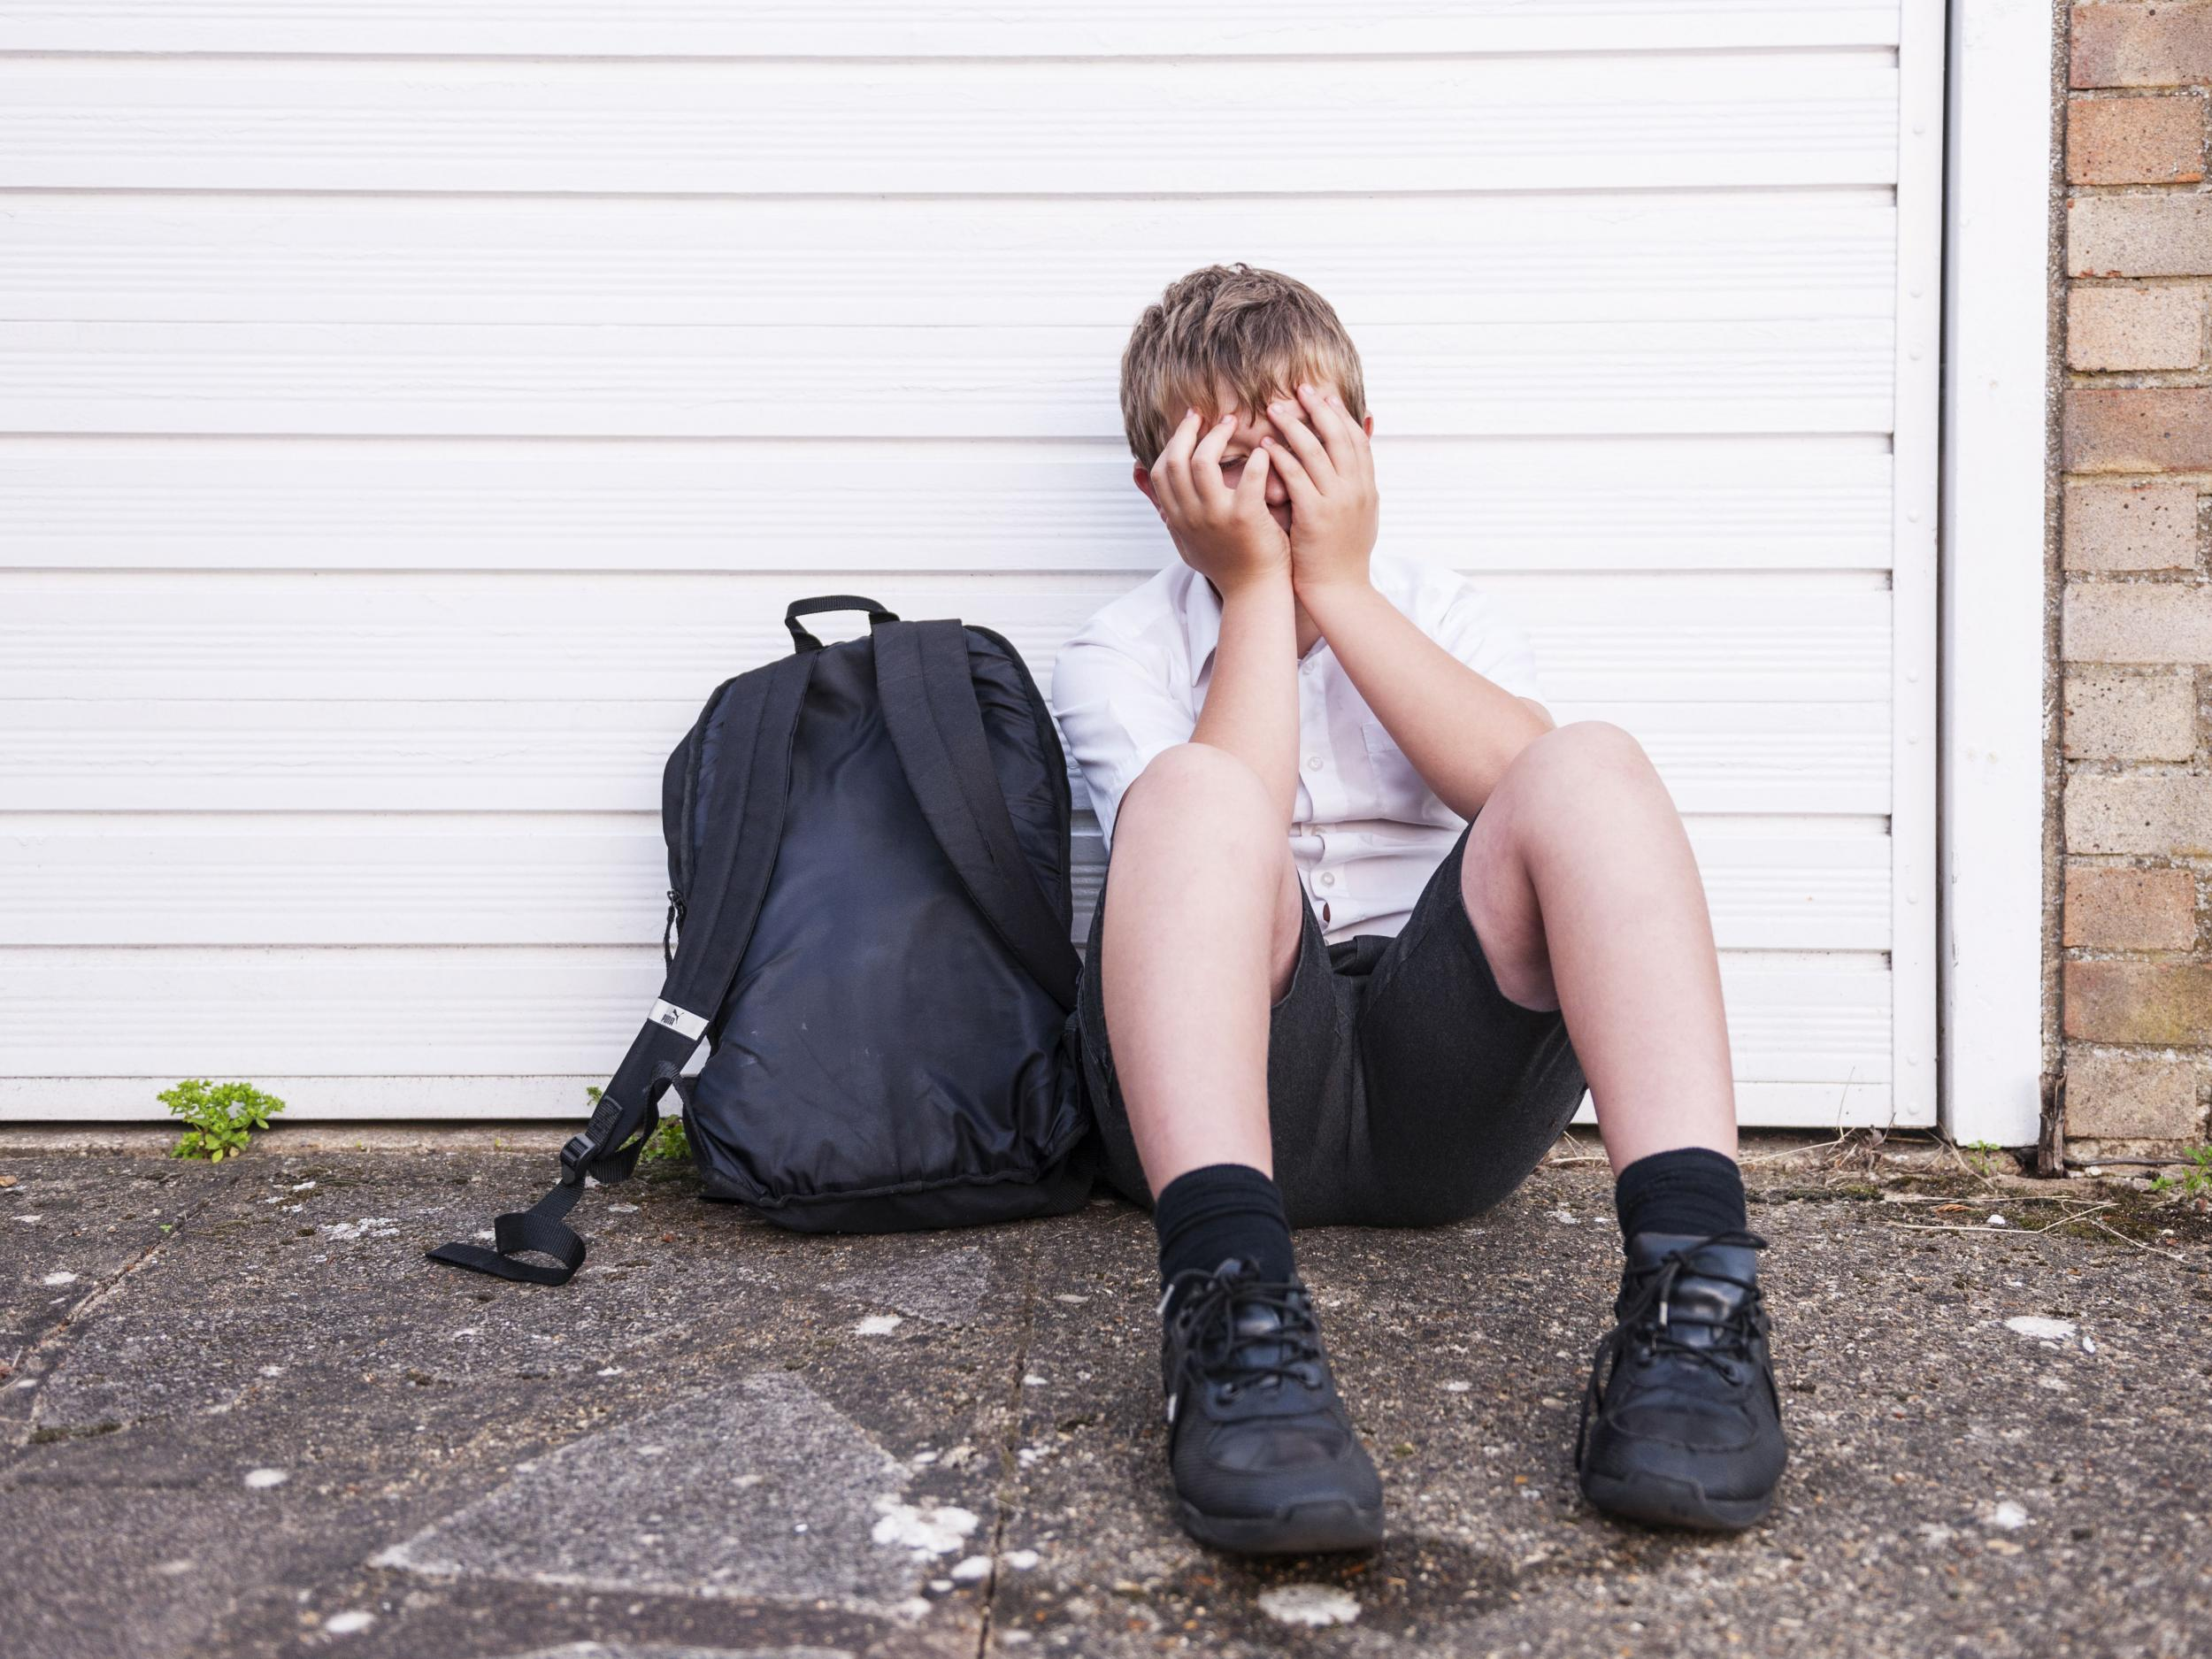 One in five children have contemplated suicide because of bullying at school, study reveals